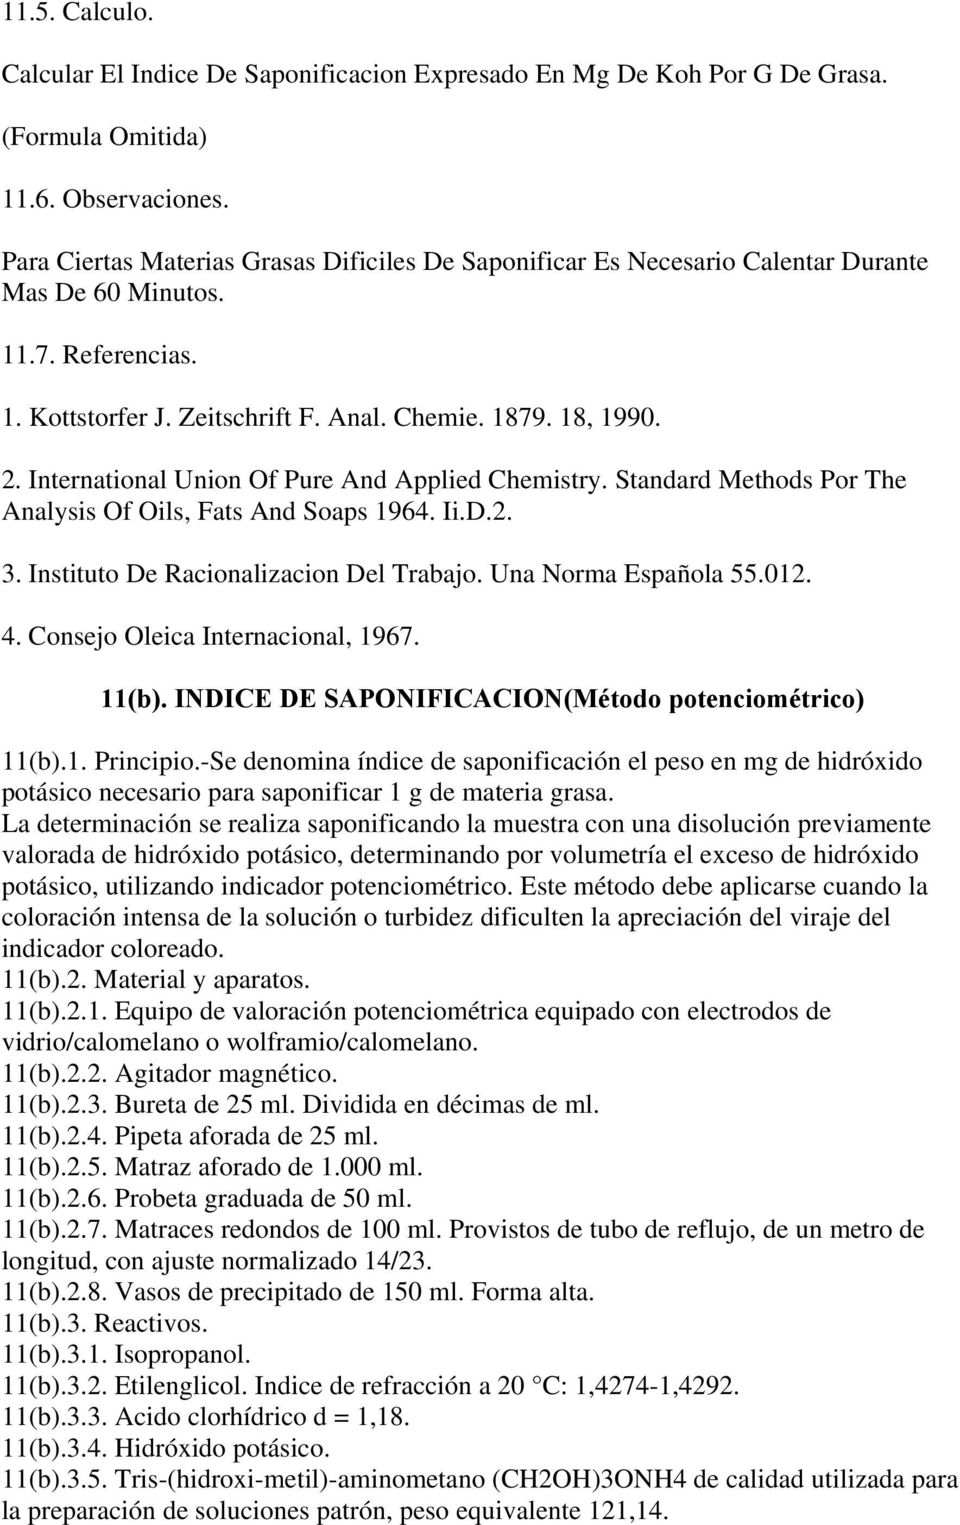 International Union Of Pure And Applied Chemistry. Standard Methods Por The Analysis Of Oils, Fats And Soaps 1964. Ii.D.2. 3. Instituto De Racionalizacion Del Trabajo. Una Norma Española 55.012. 4.